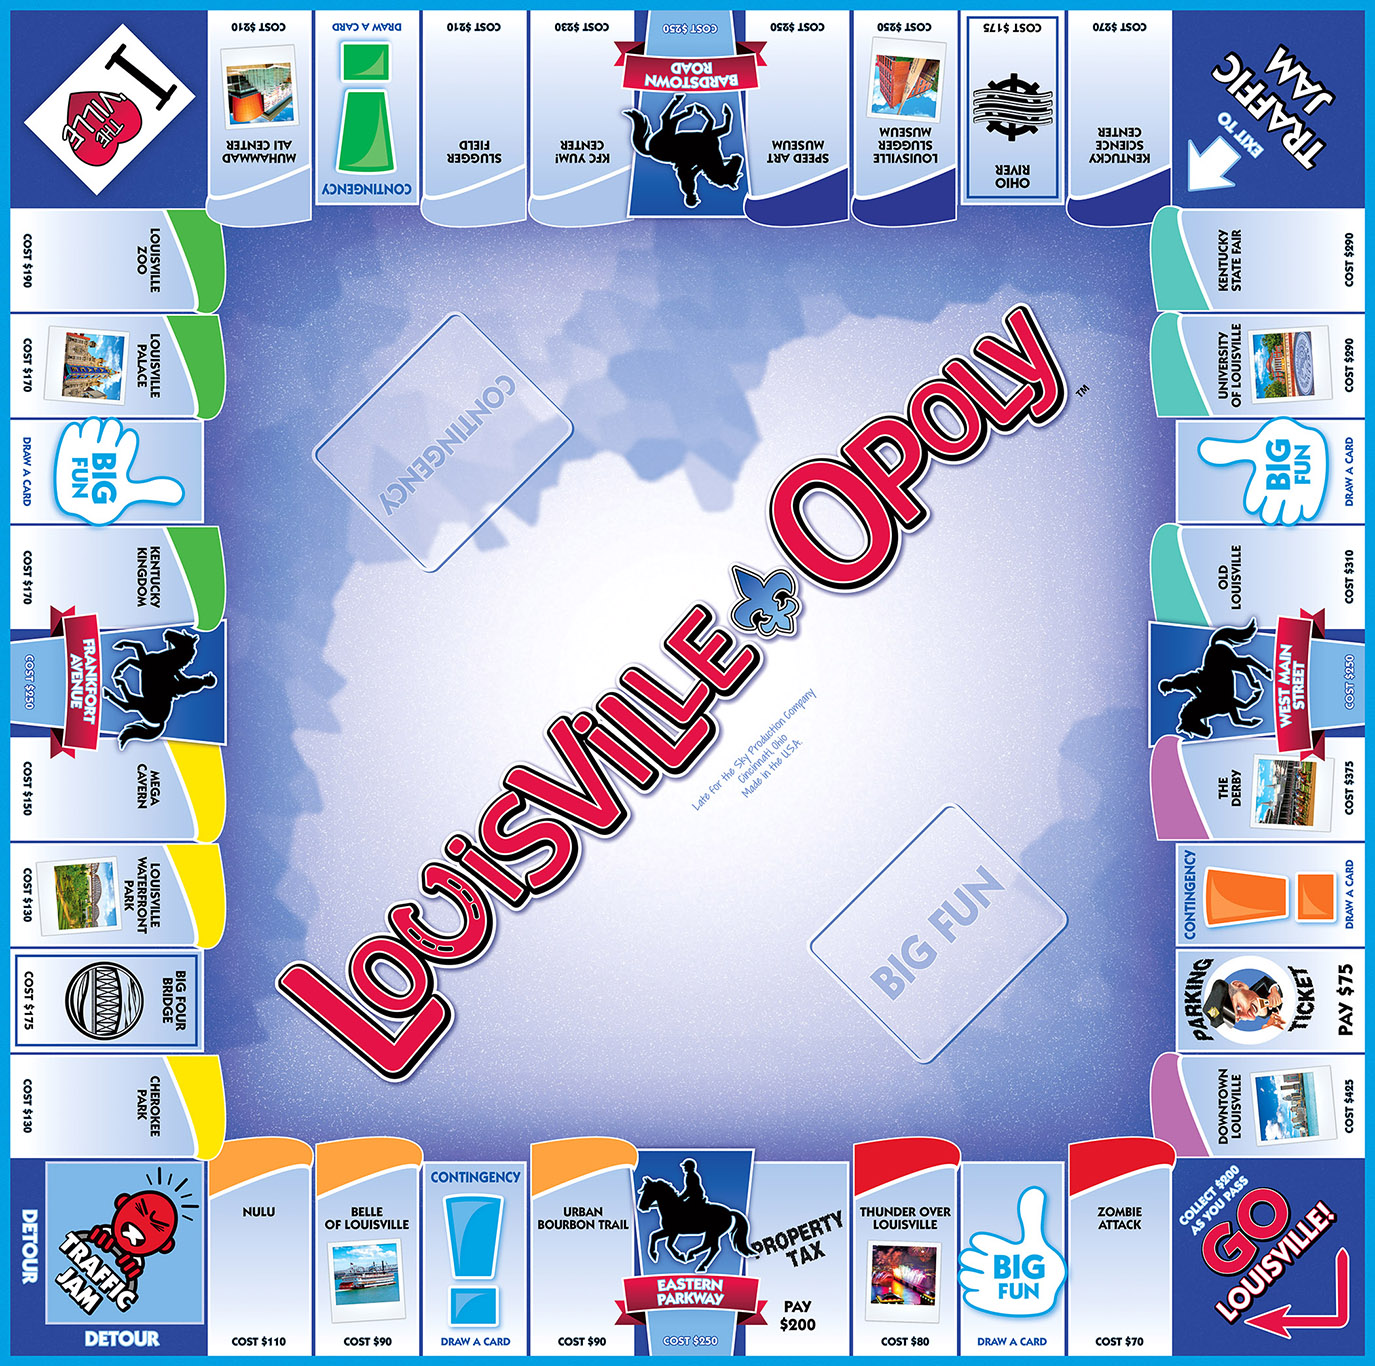 LOUISVILLE-OPOLY Board Game